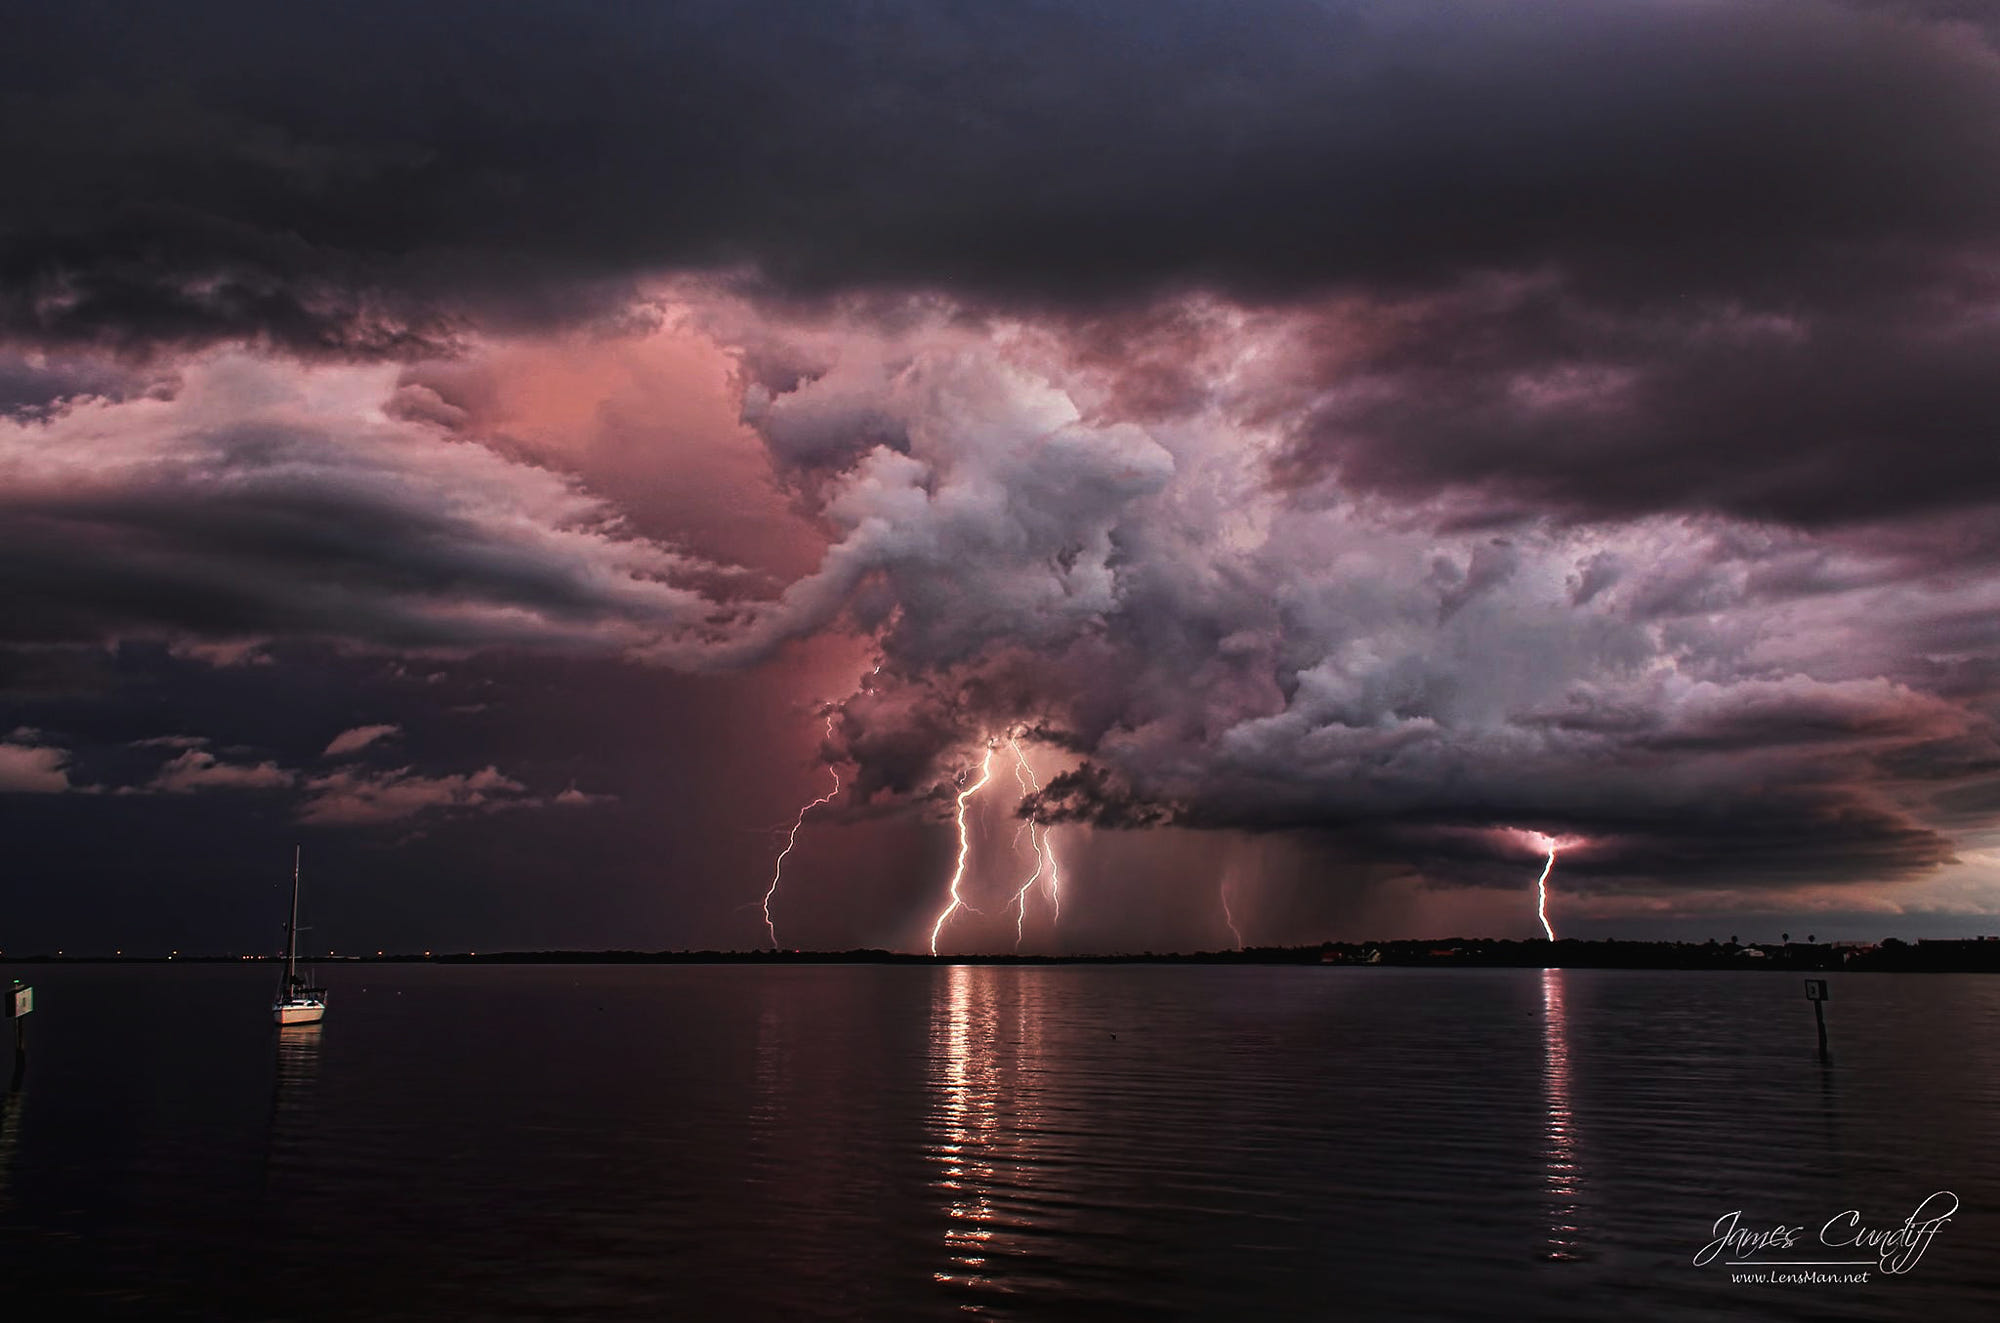 Dark Images Wallpaper Hd Lightning Storm Over Tampa Florida By James Cundiff